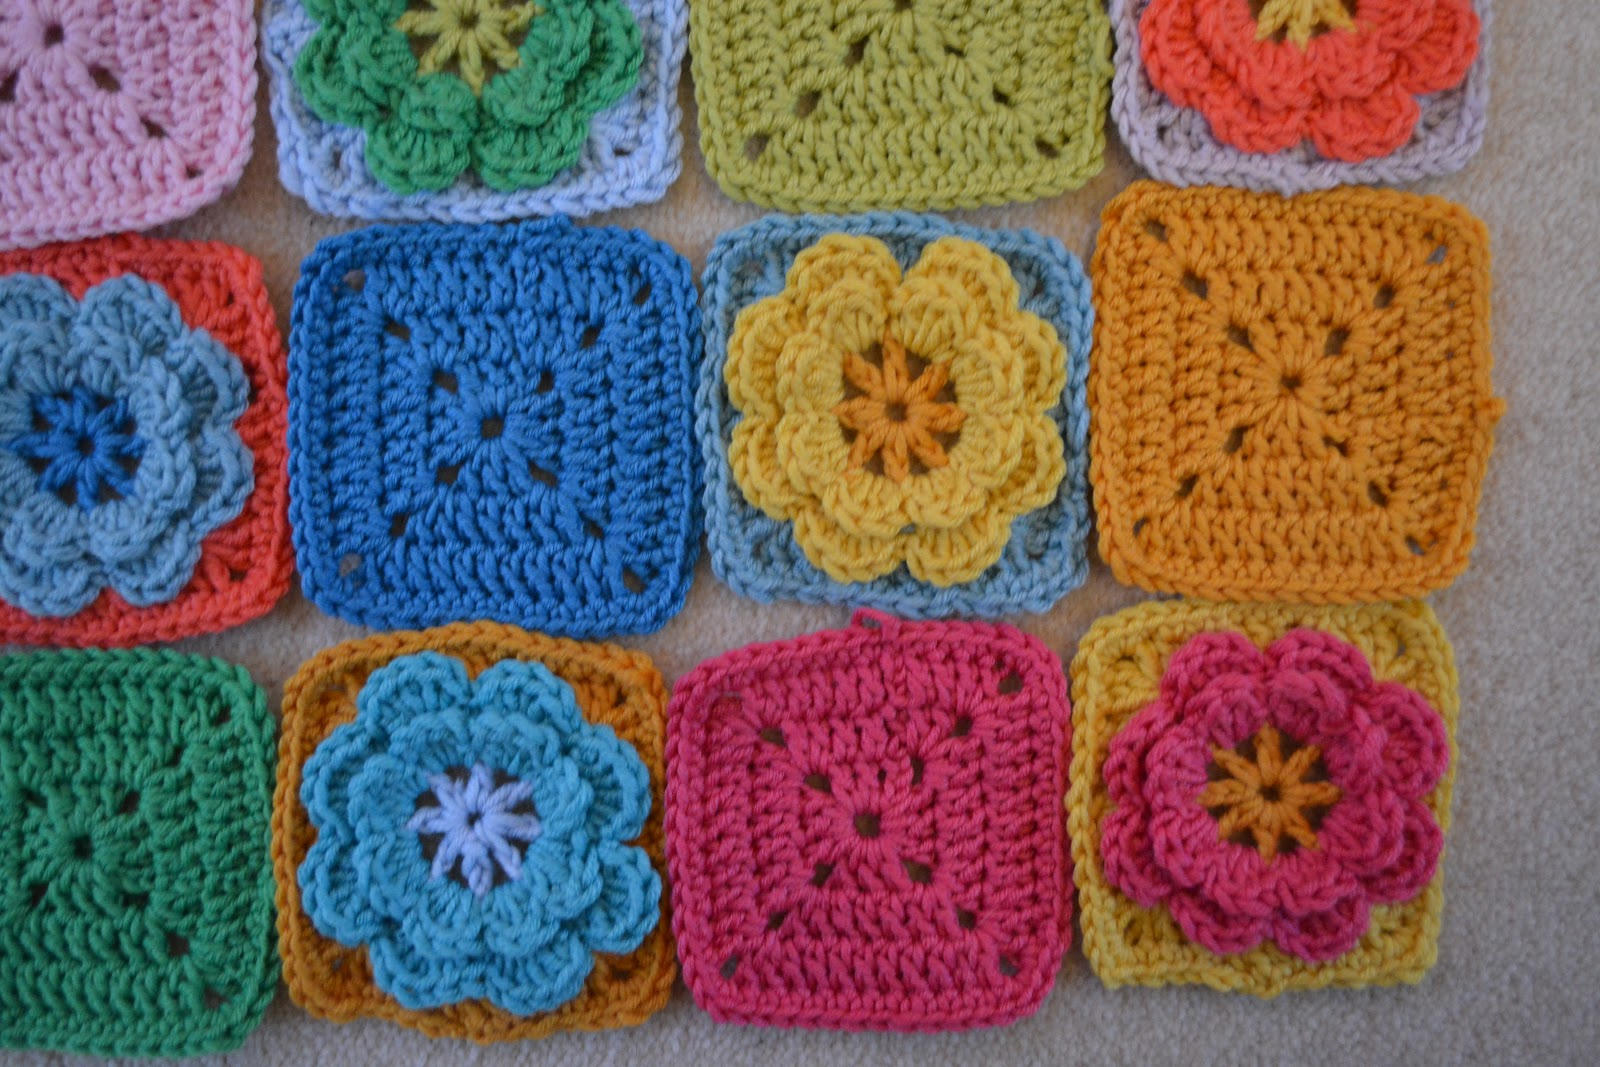 Crocheting Grandma : Crochet granny squares inspired by Rosehip